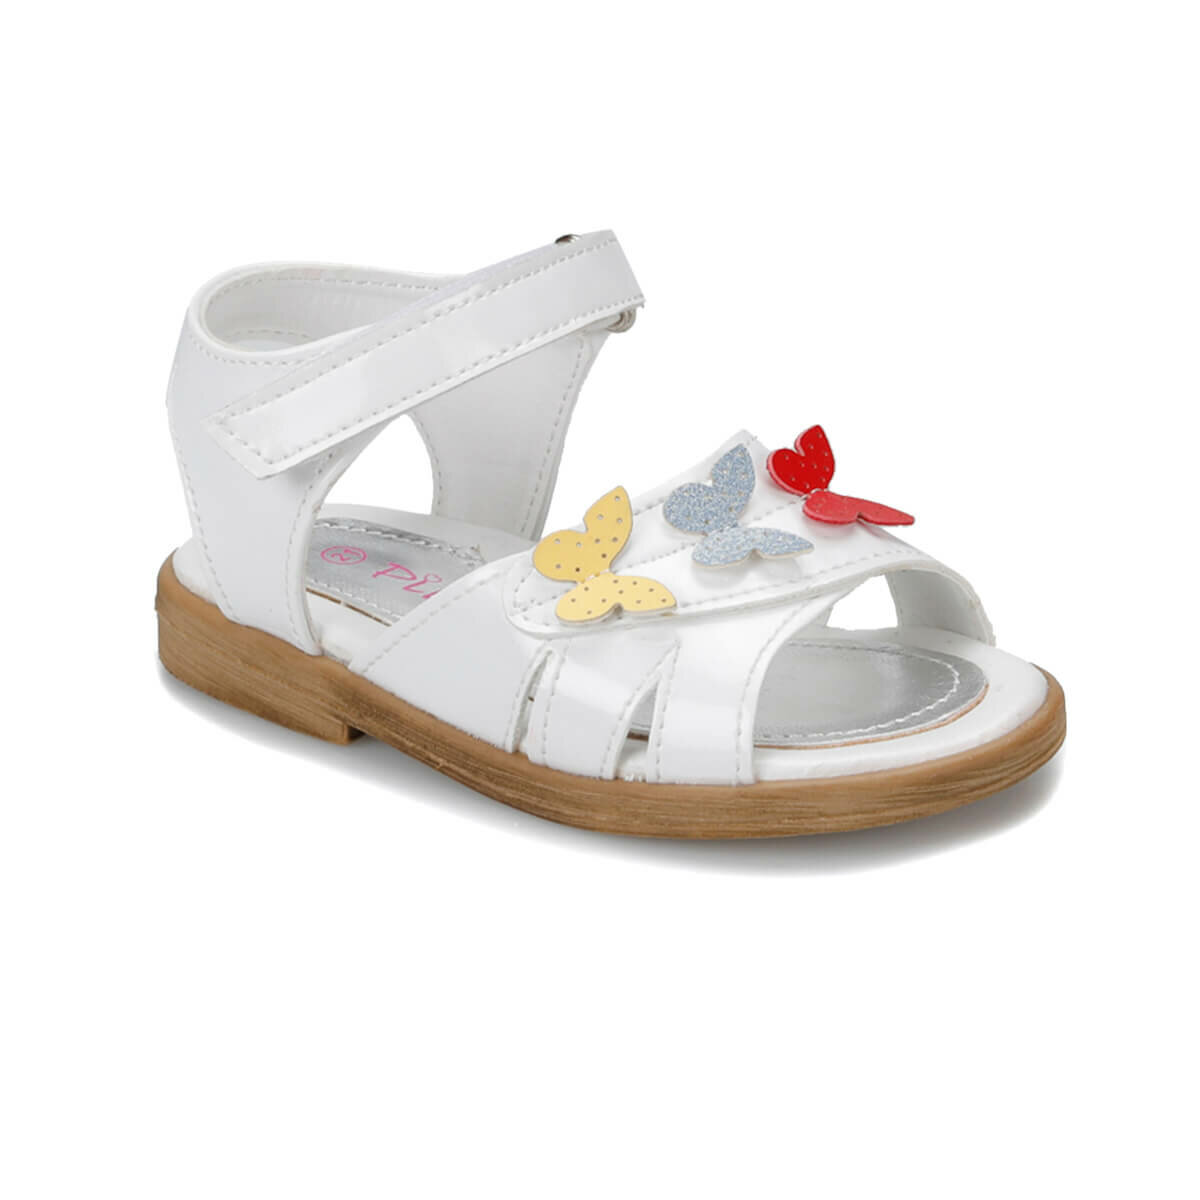 FLO 91. TIGGY-2. B White Female Child Sandals PINKSTEP